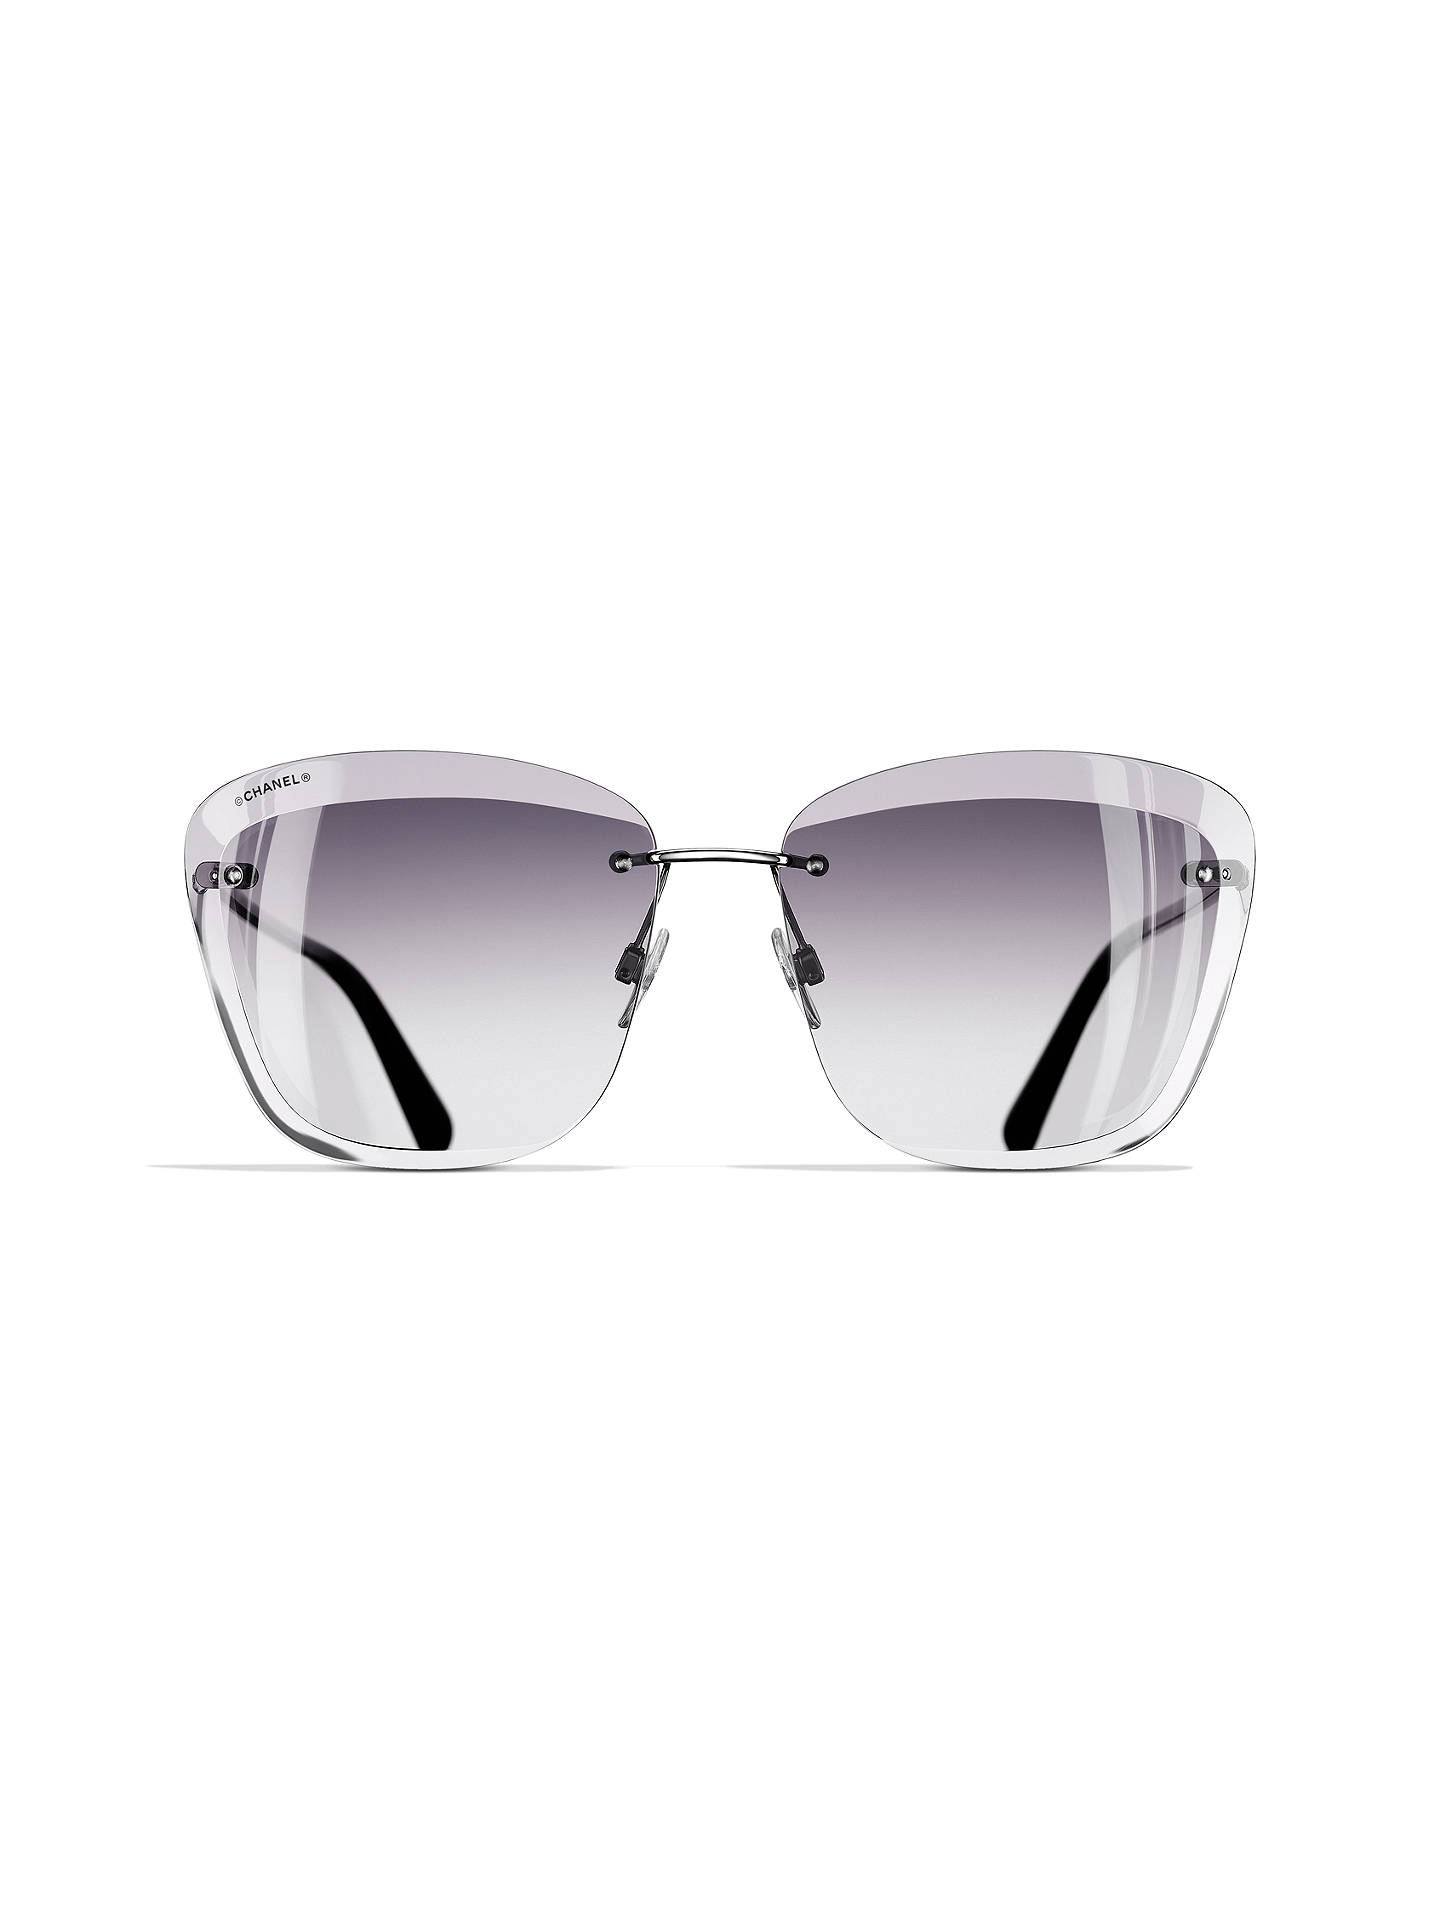 be287e3e10 ... BuyCHANEL Butterfly Sunglasses CH4221 Silver Grey Online at  johnlewis.com ...